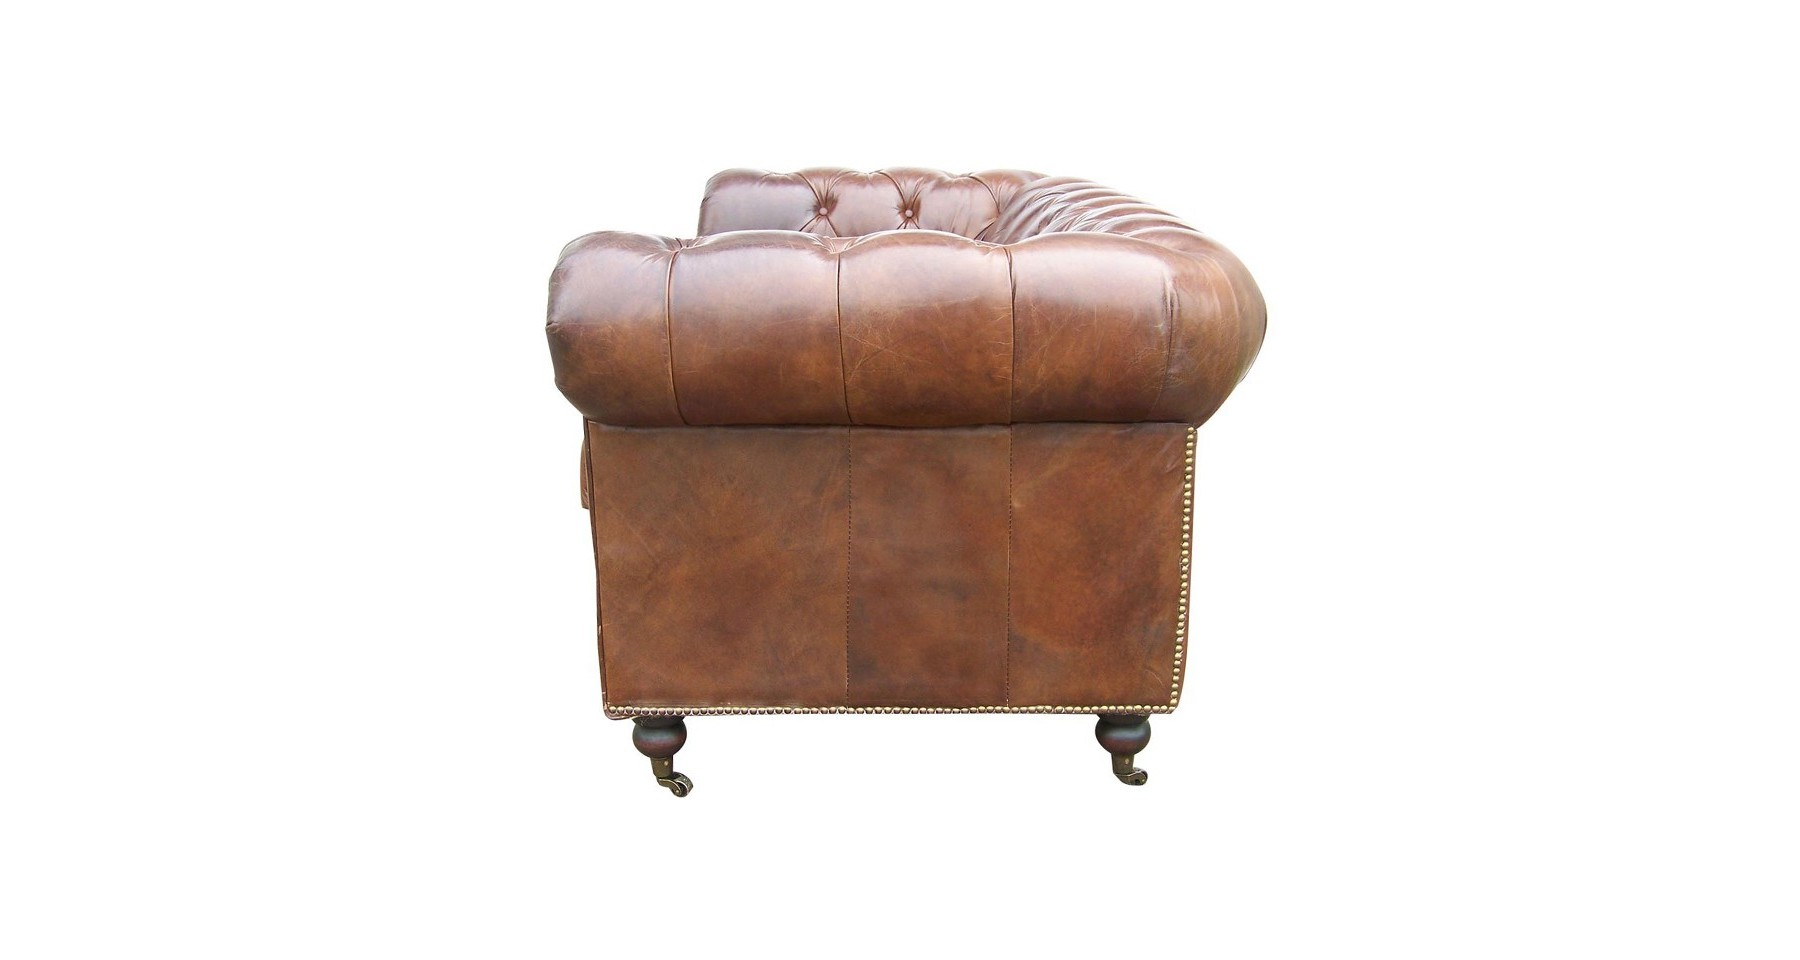 Chesterfield Convertible 2 Places Canapé Chesterfield 2 Places En Cuir Pleine Fleur Marron